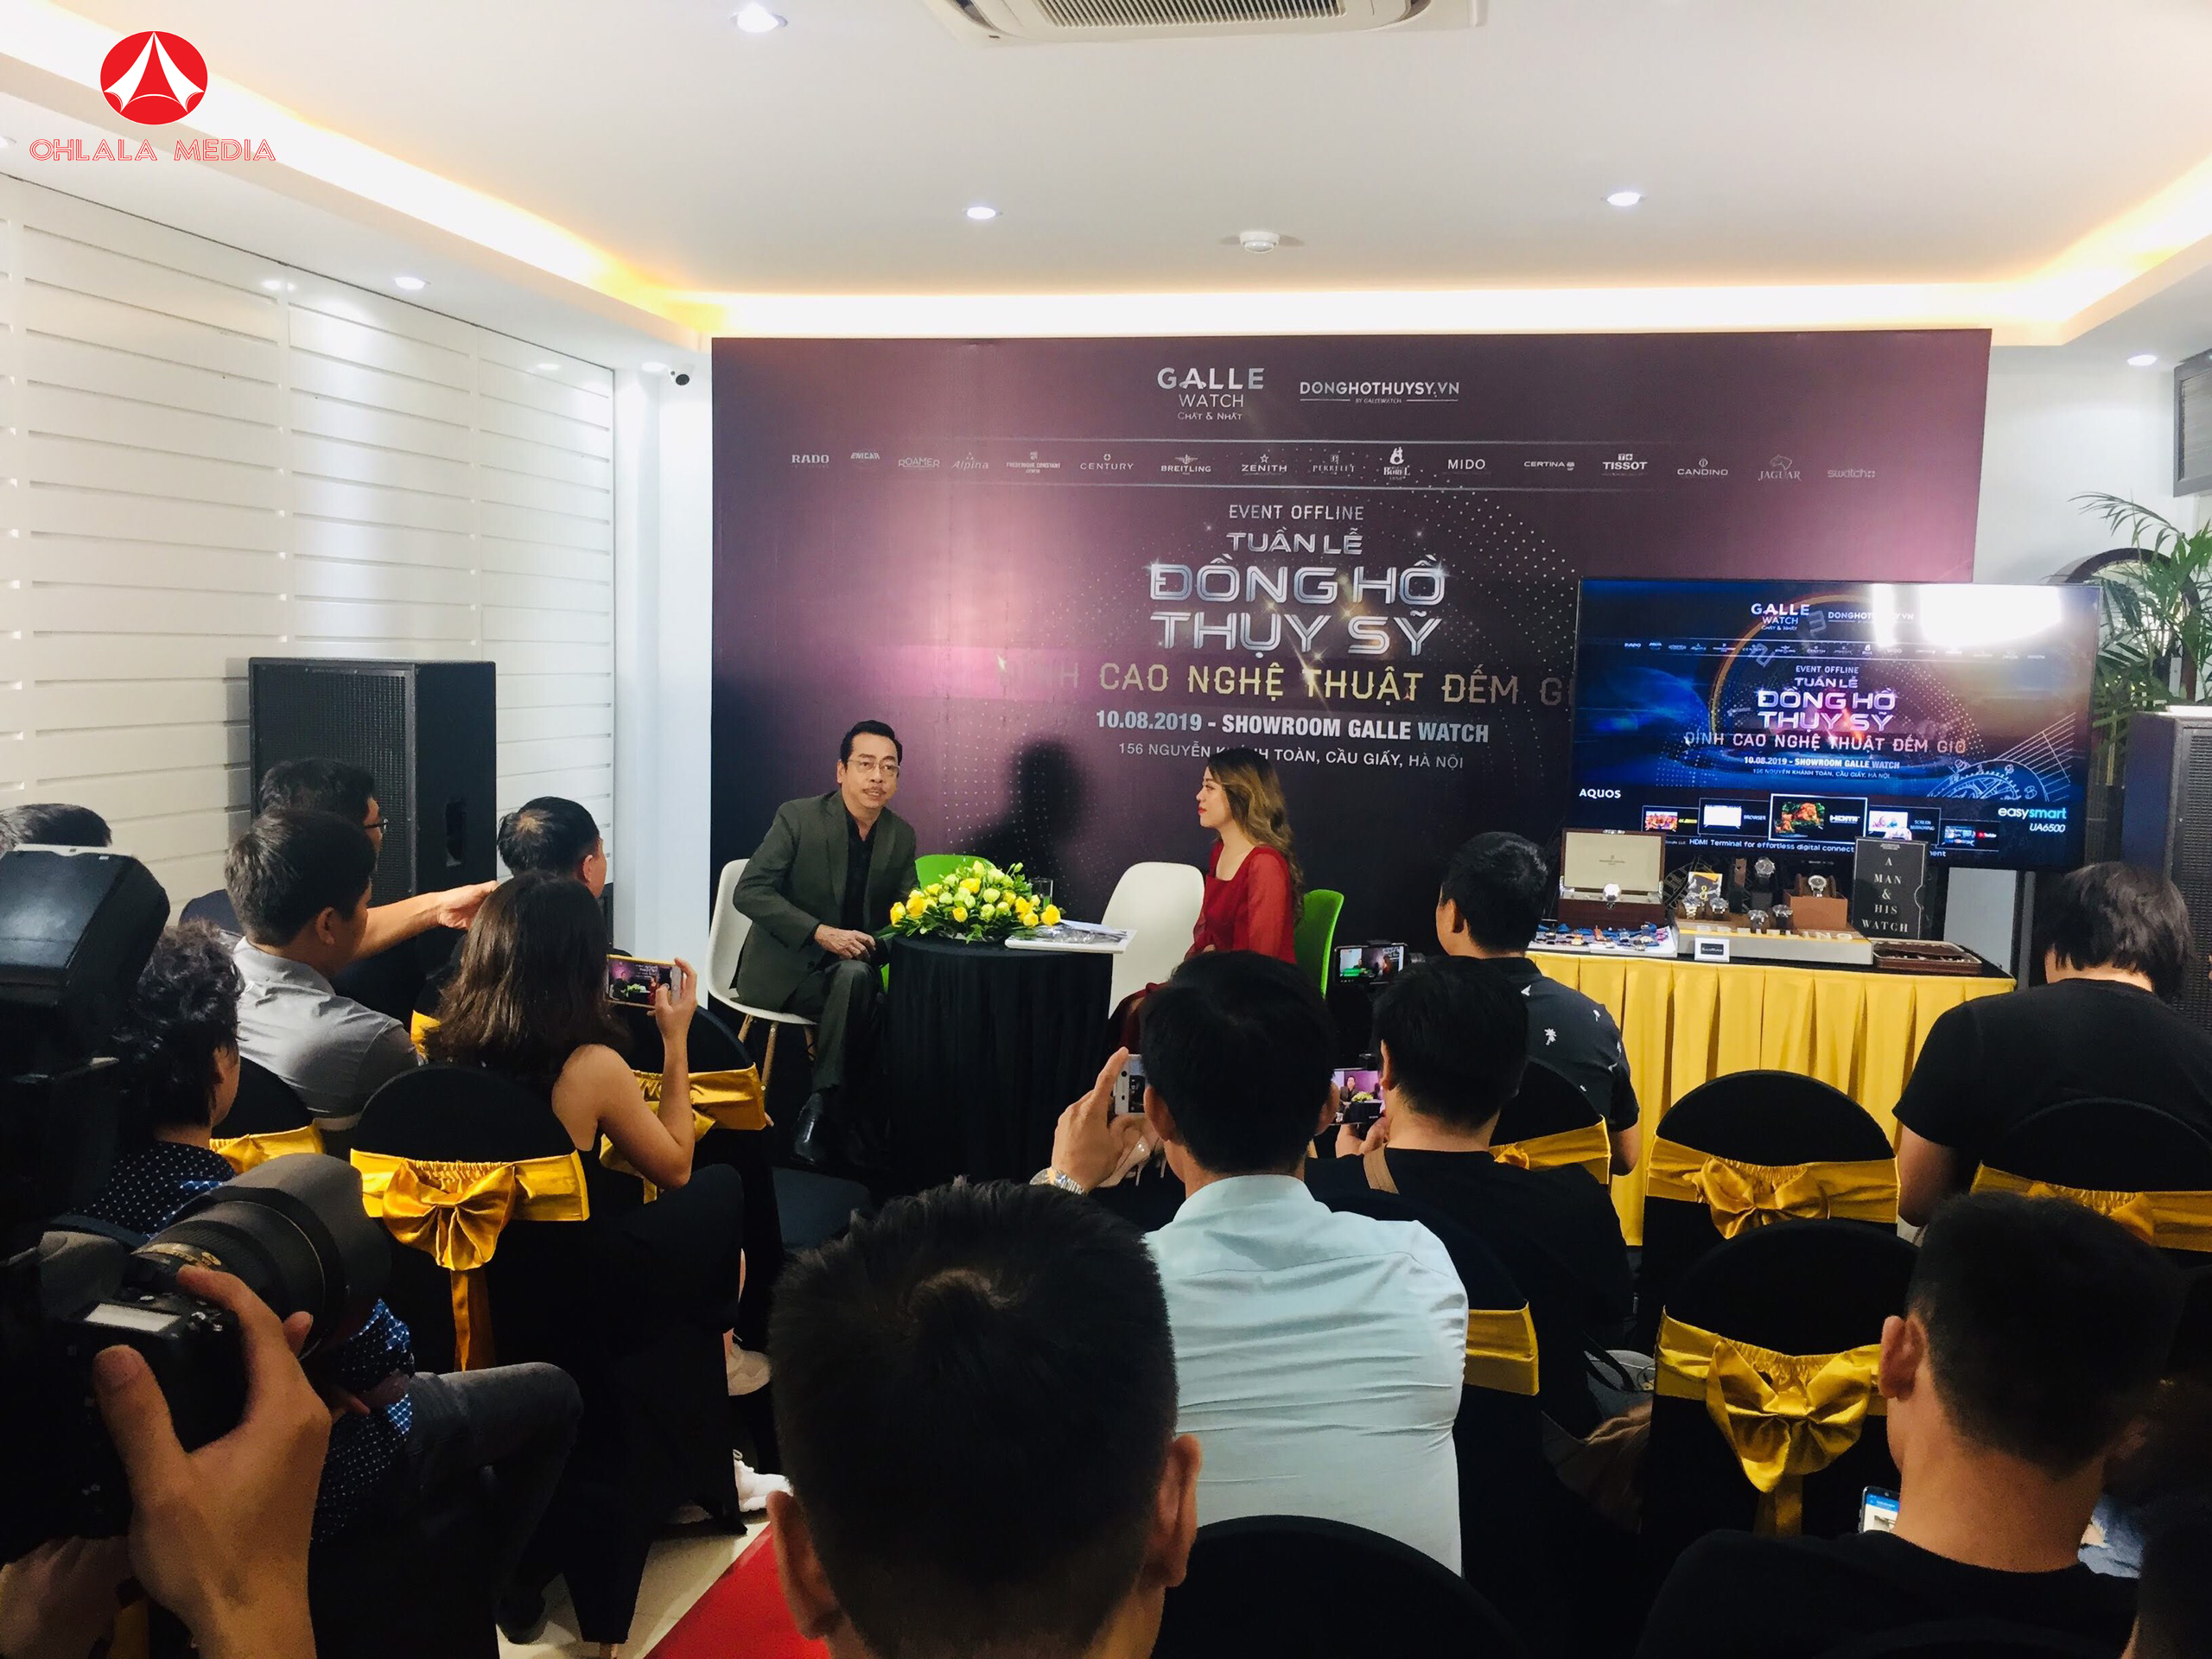 Talk Show Đồng Hồ Thụy Sỹ Galle Watch – Ohlala Event